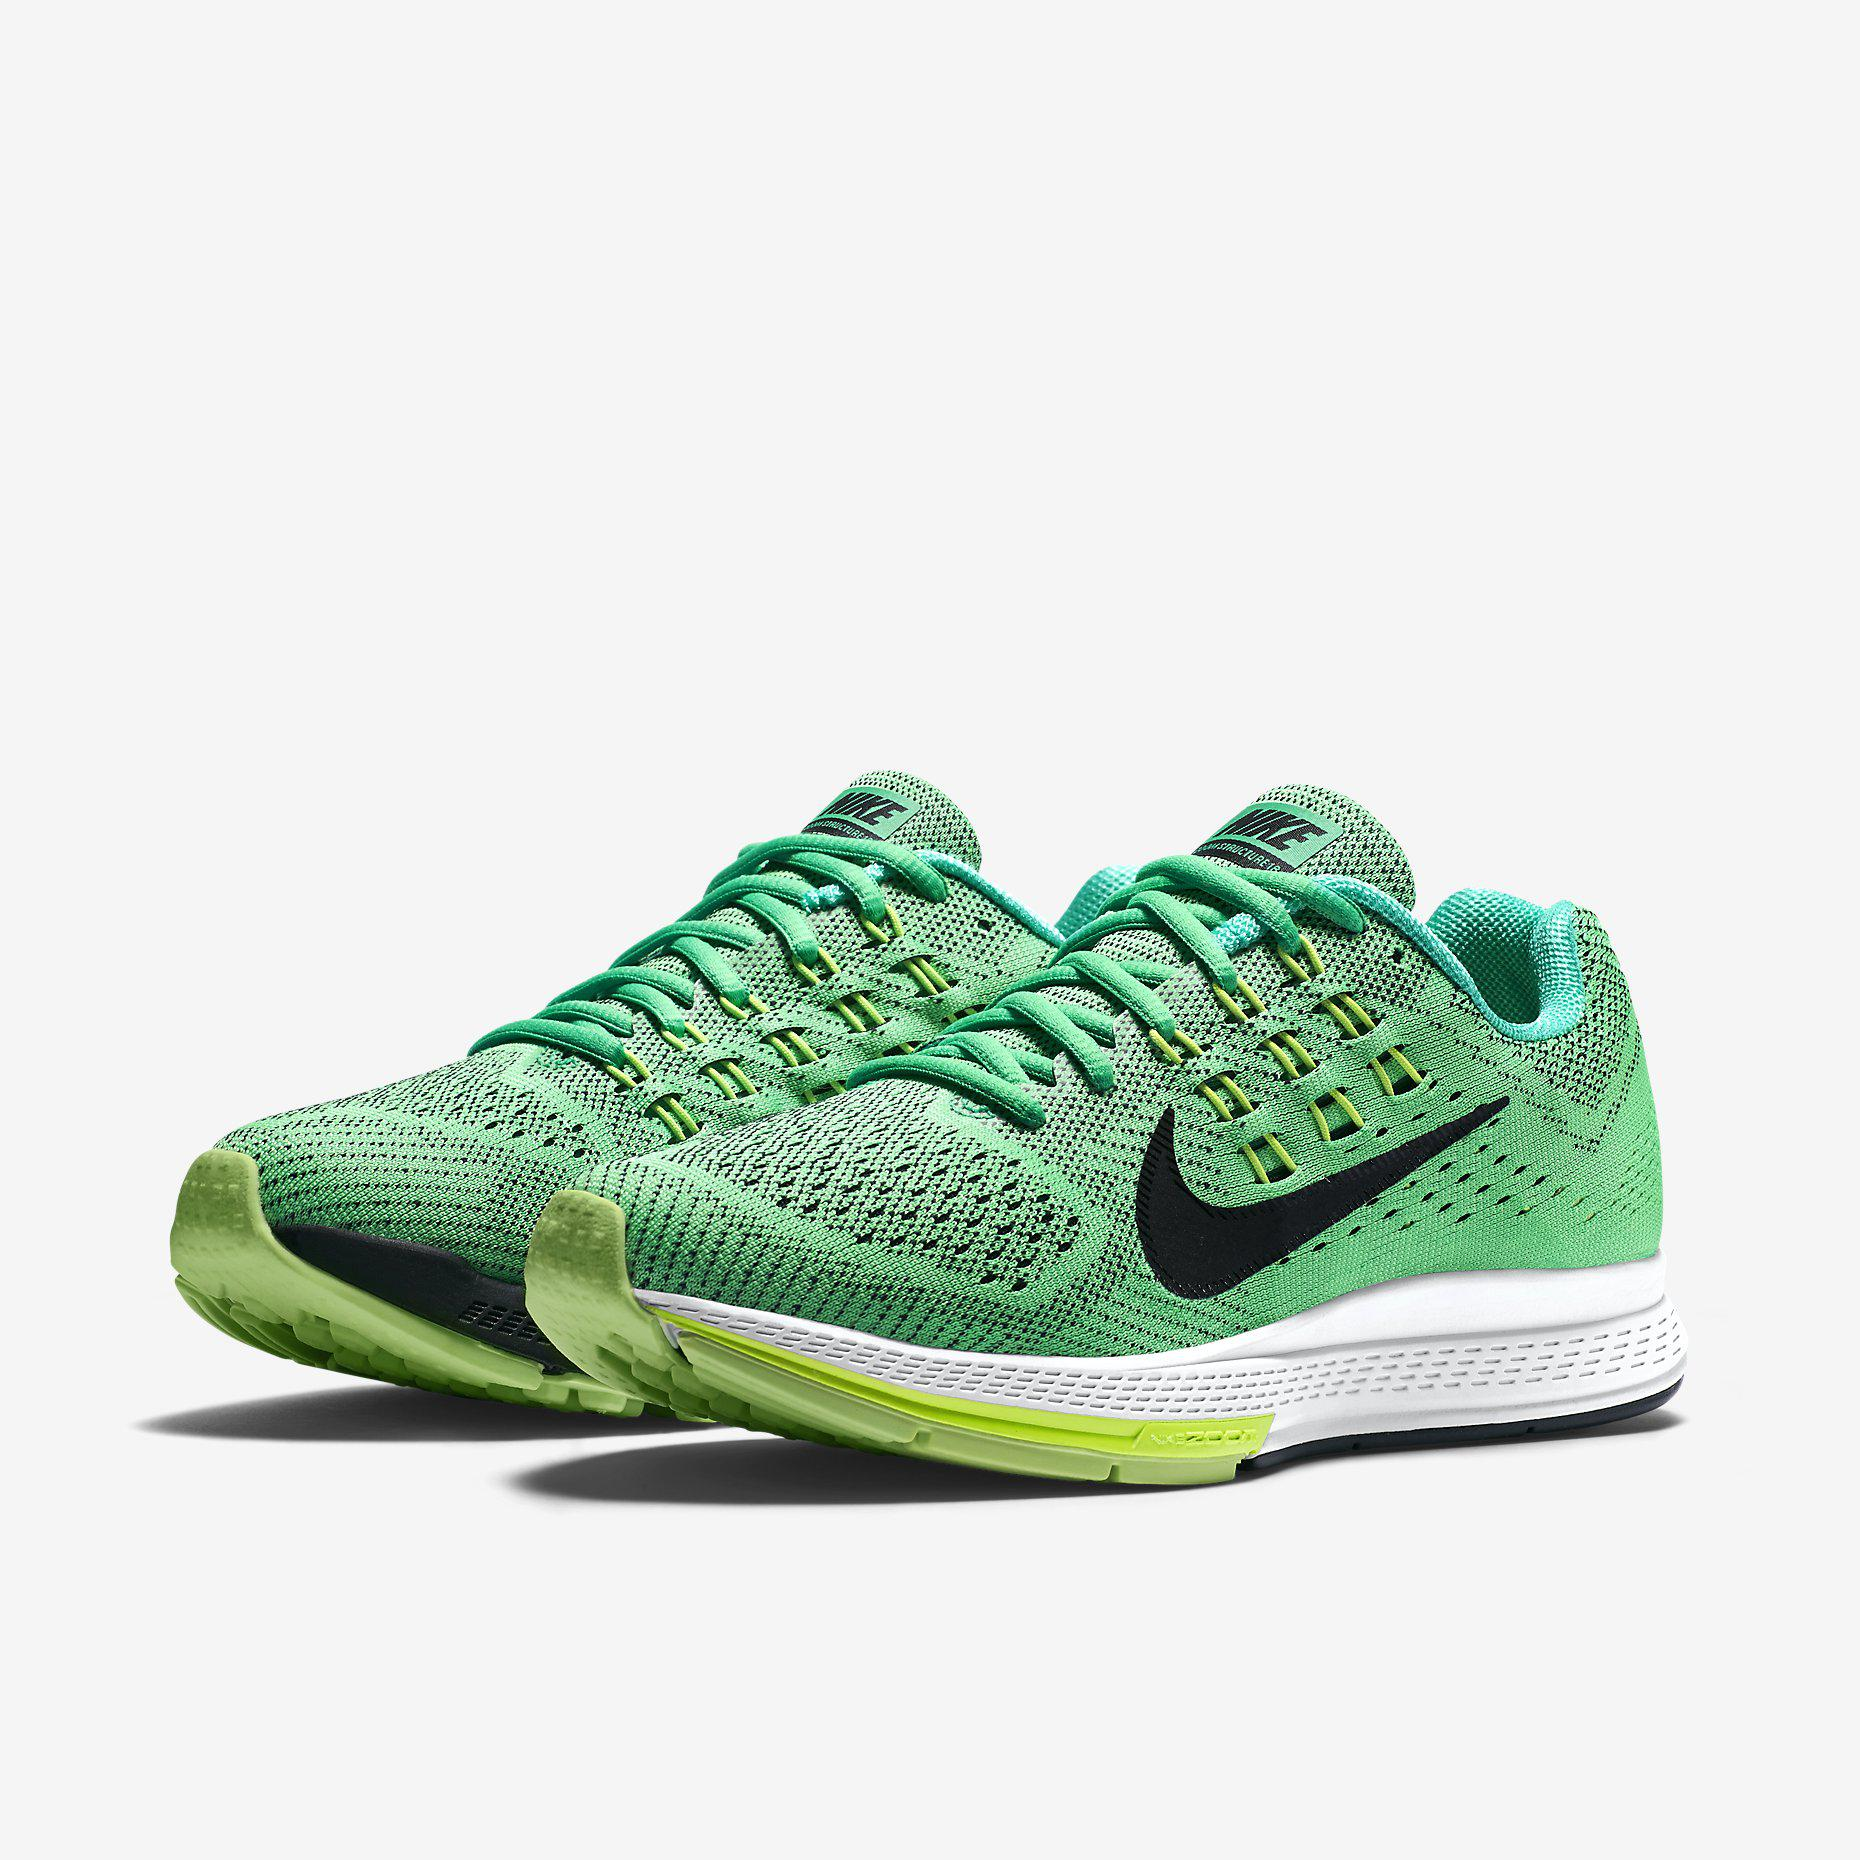 new arrival 68a8f 96178 womens nike air zoom structure 18 green